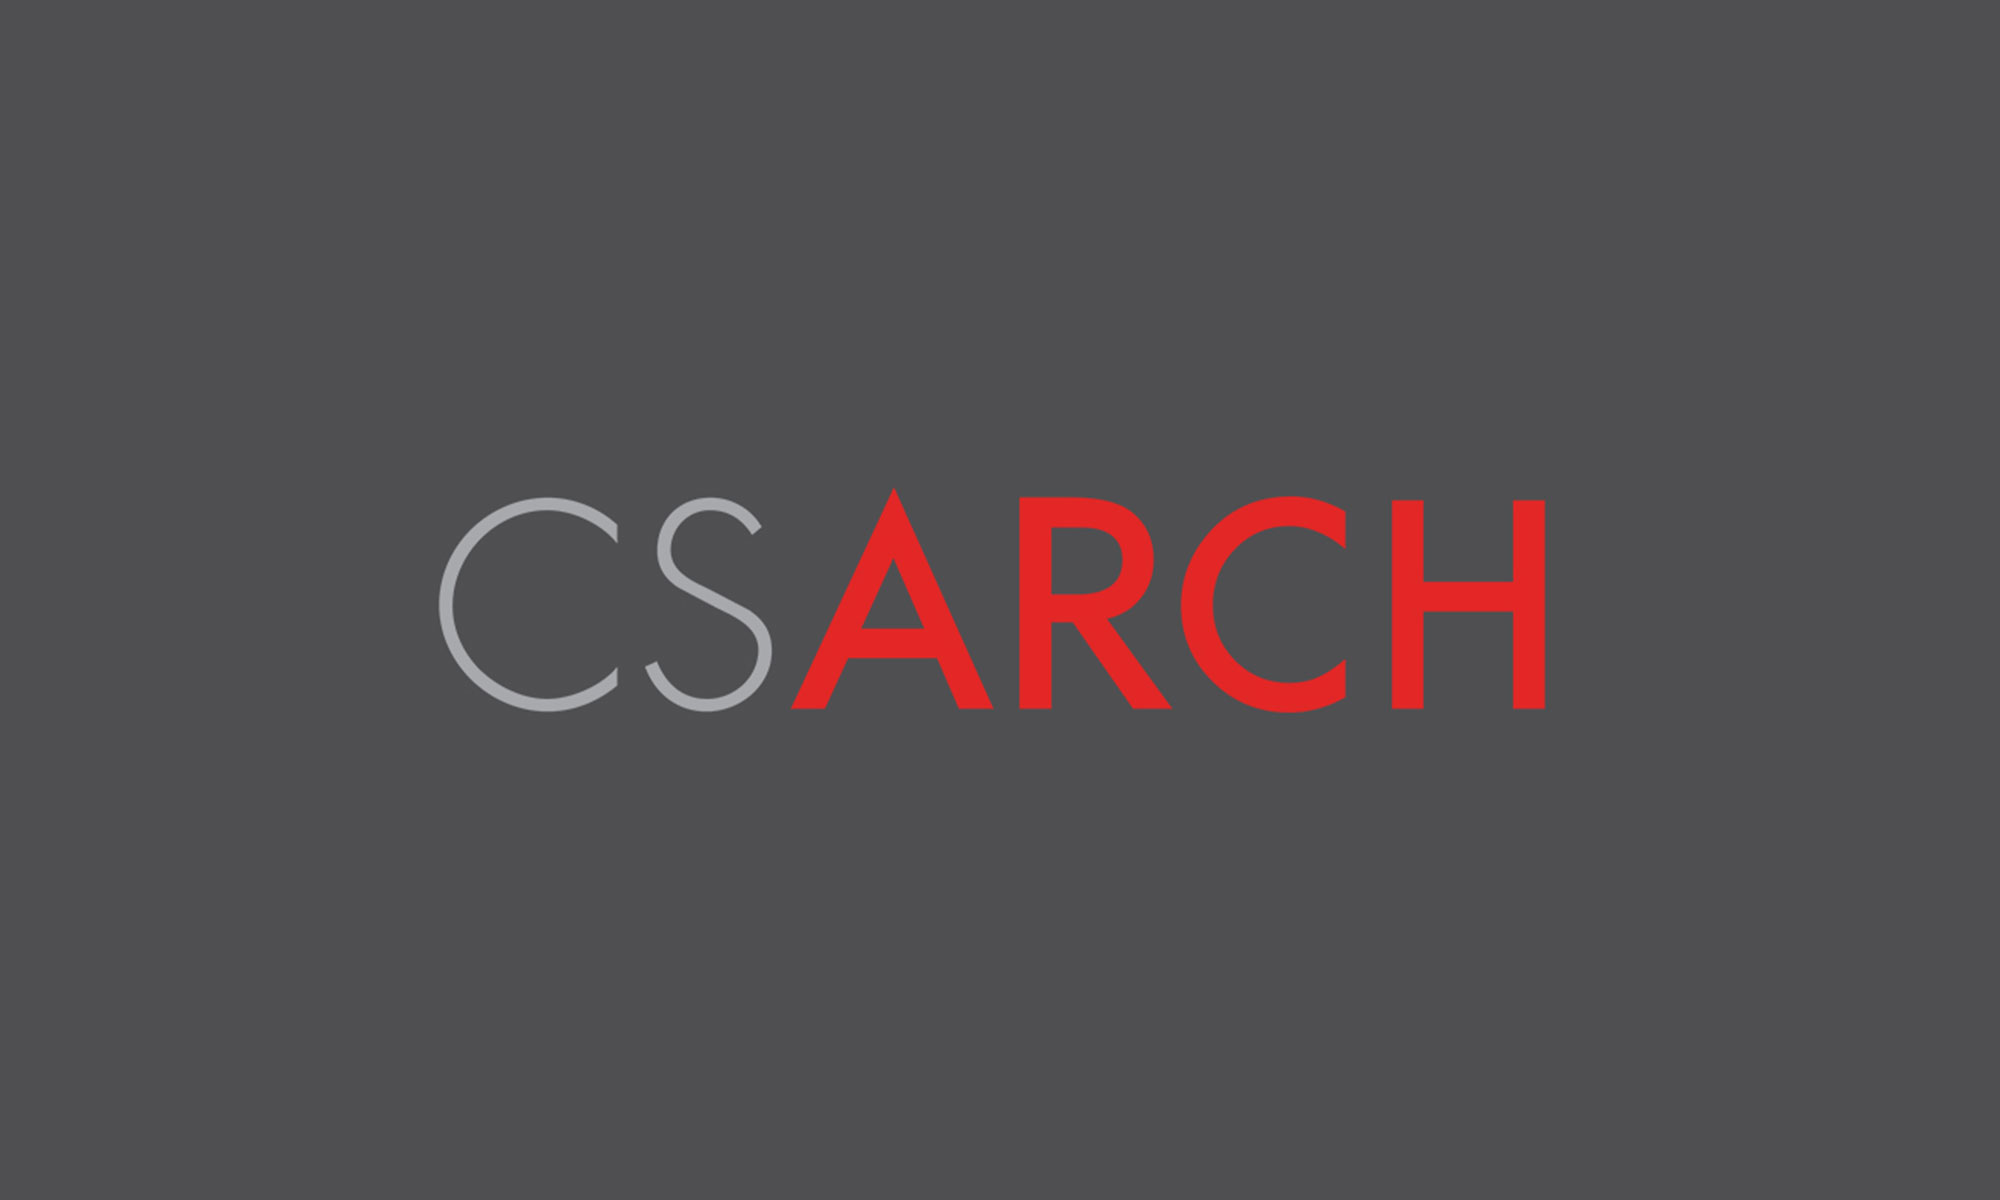 CSArch Refreshes Brand with New Logo